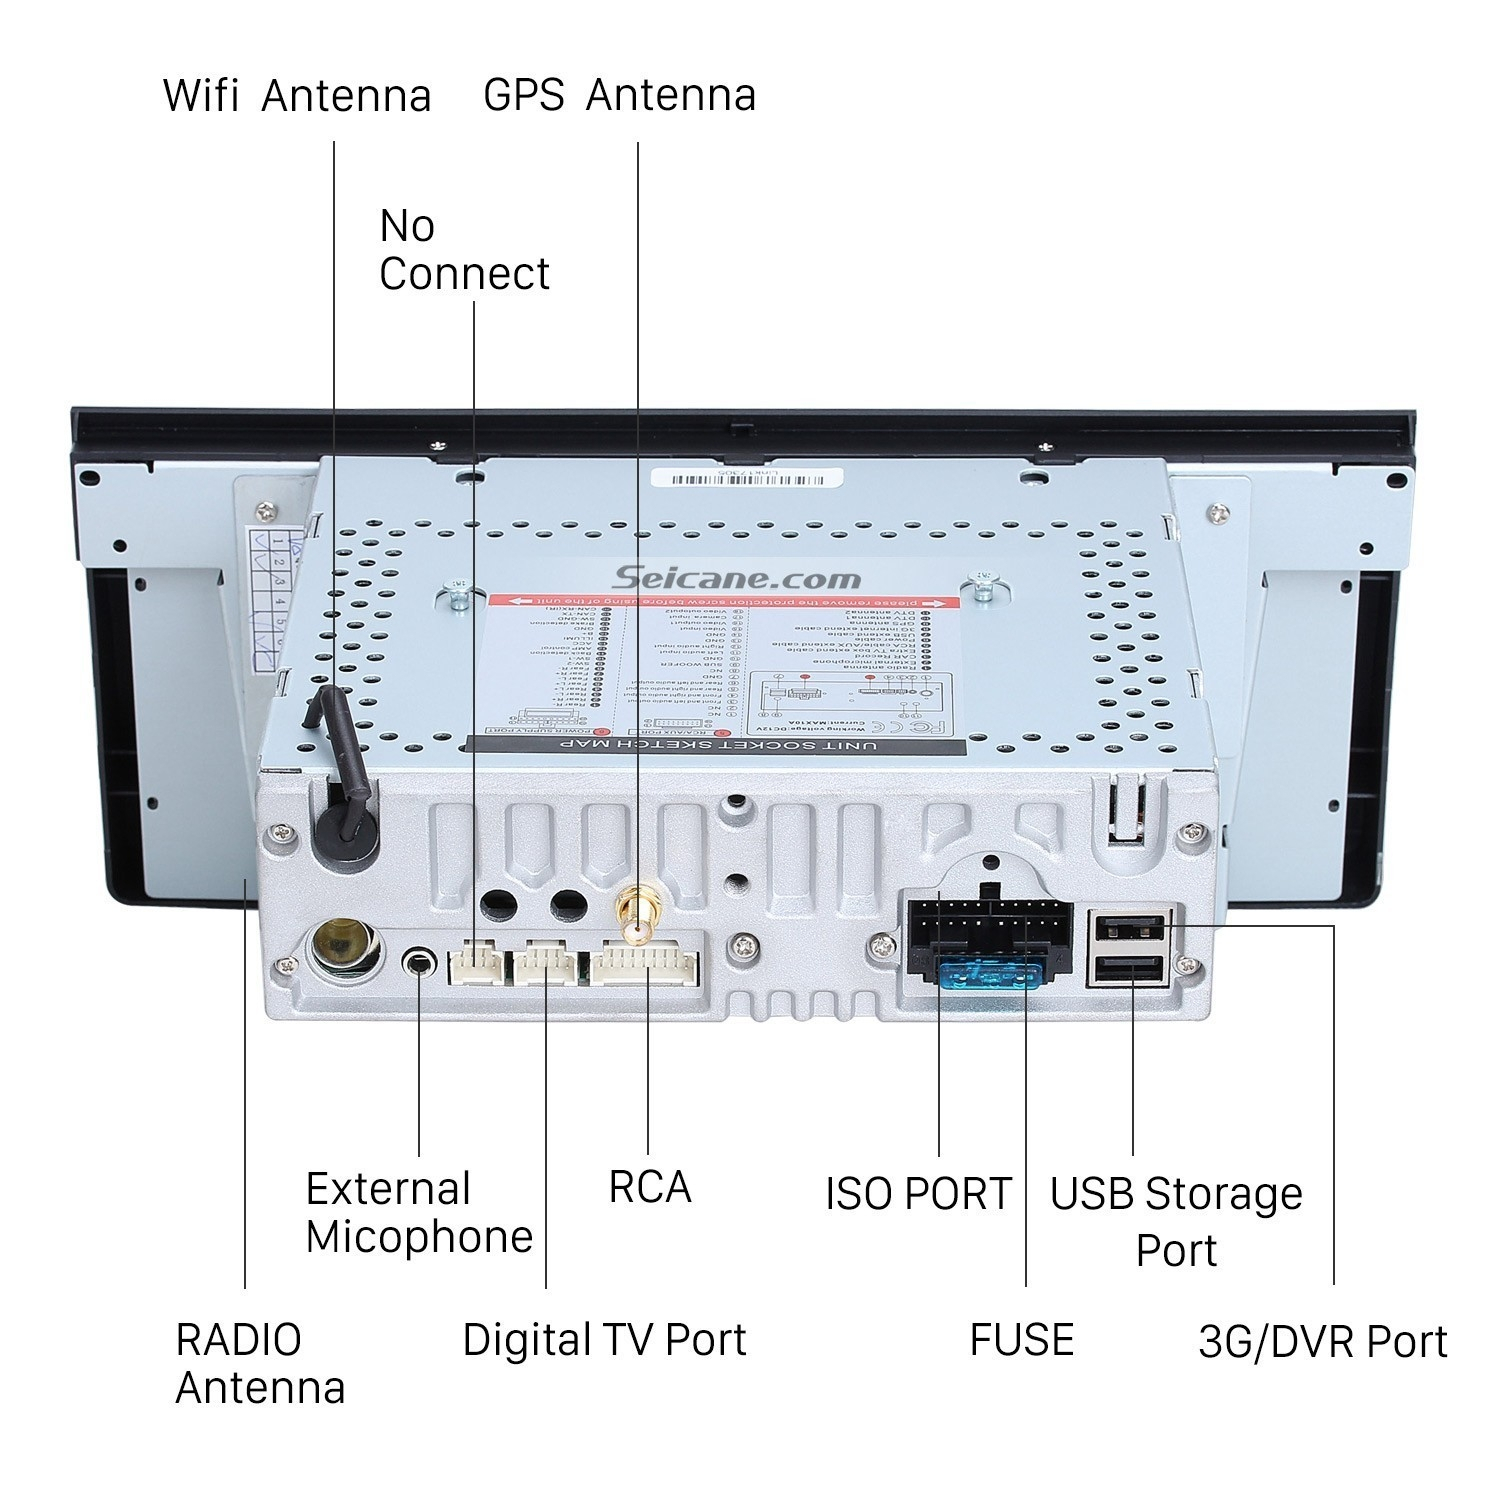 jaguar radio wiring diagram Collection-jaguar wiring diagram Car Stereo Wiring Diagram Unique Cheap All In e android 6 0 2-o